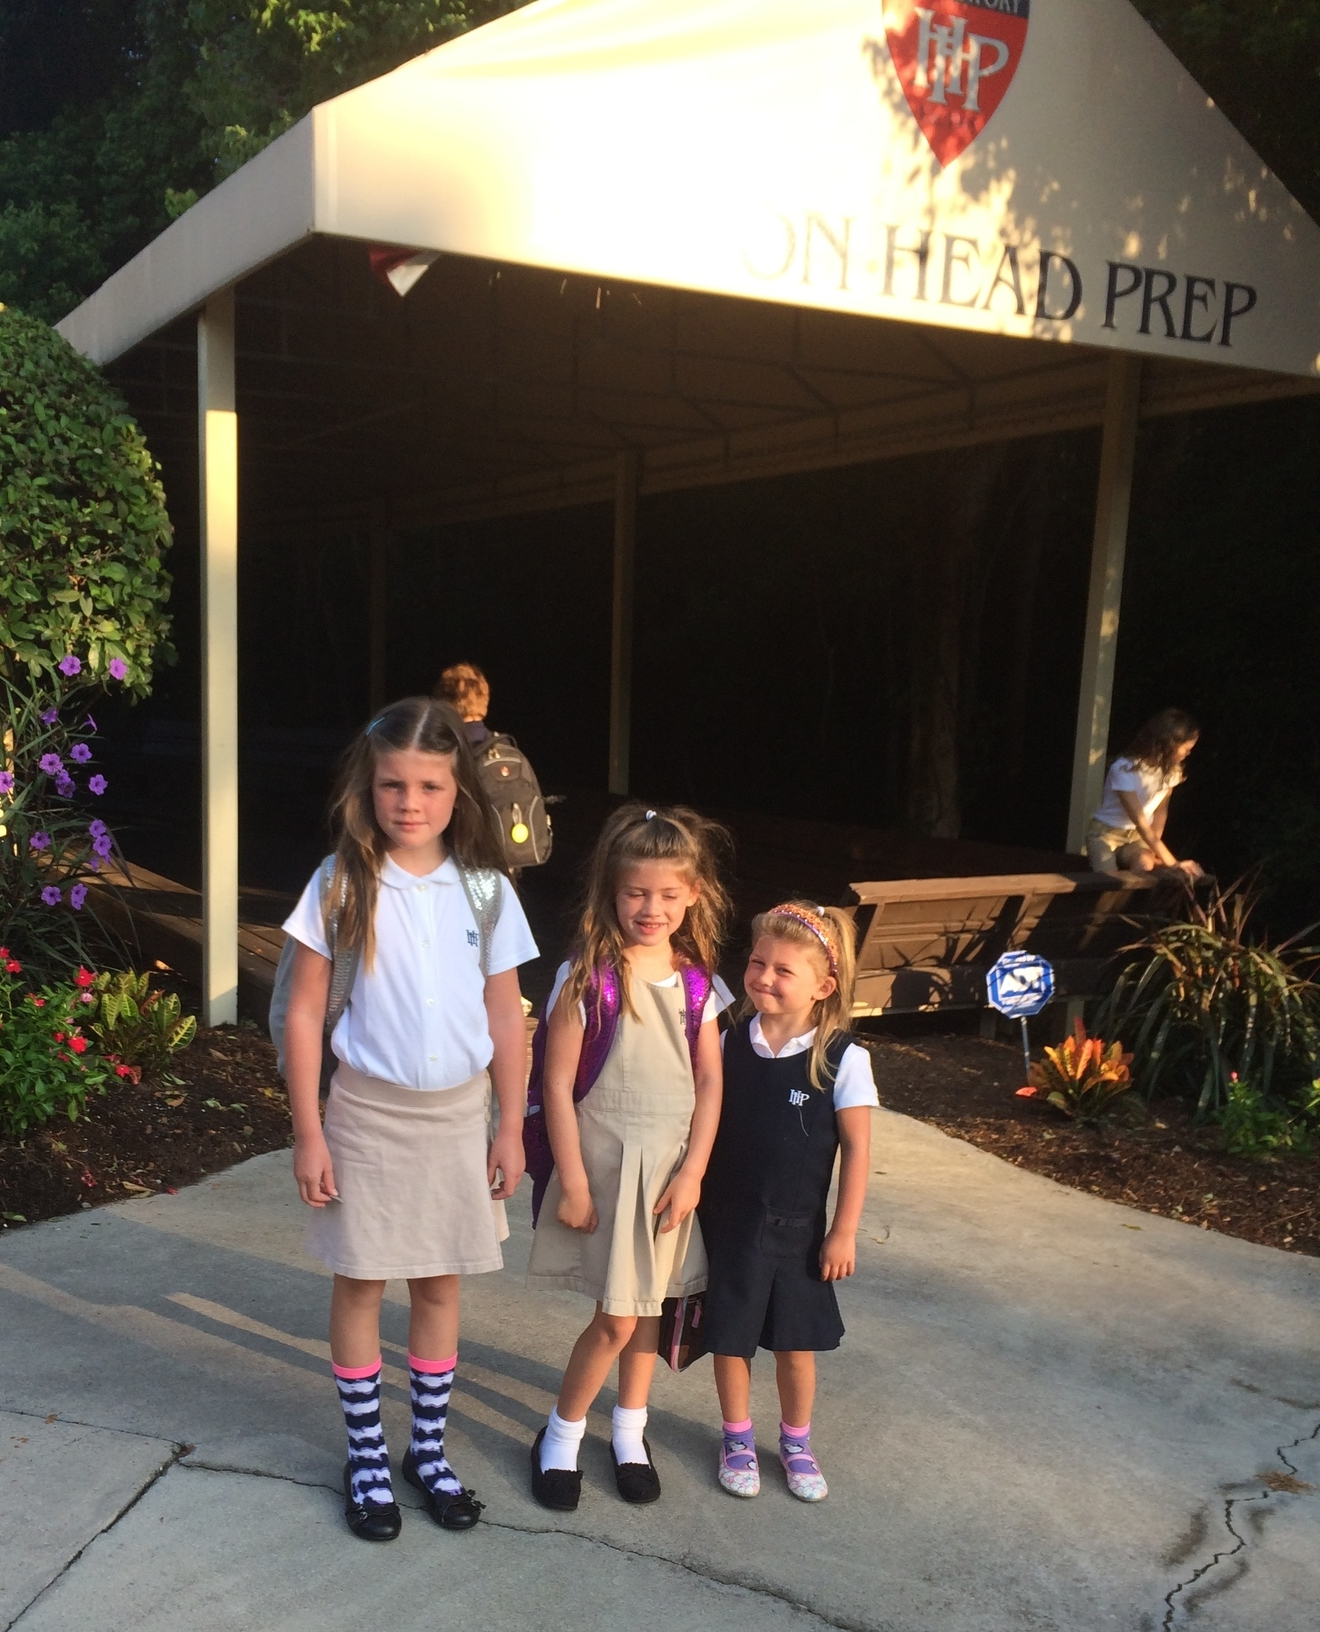 The girls' first day of school.